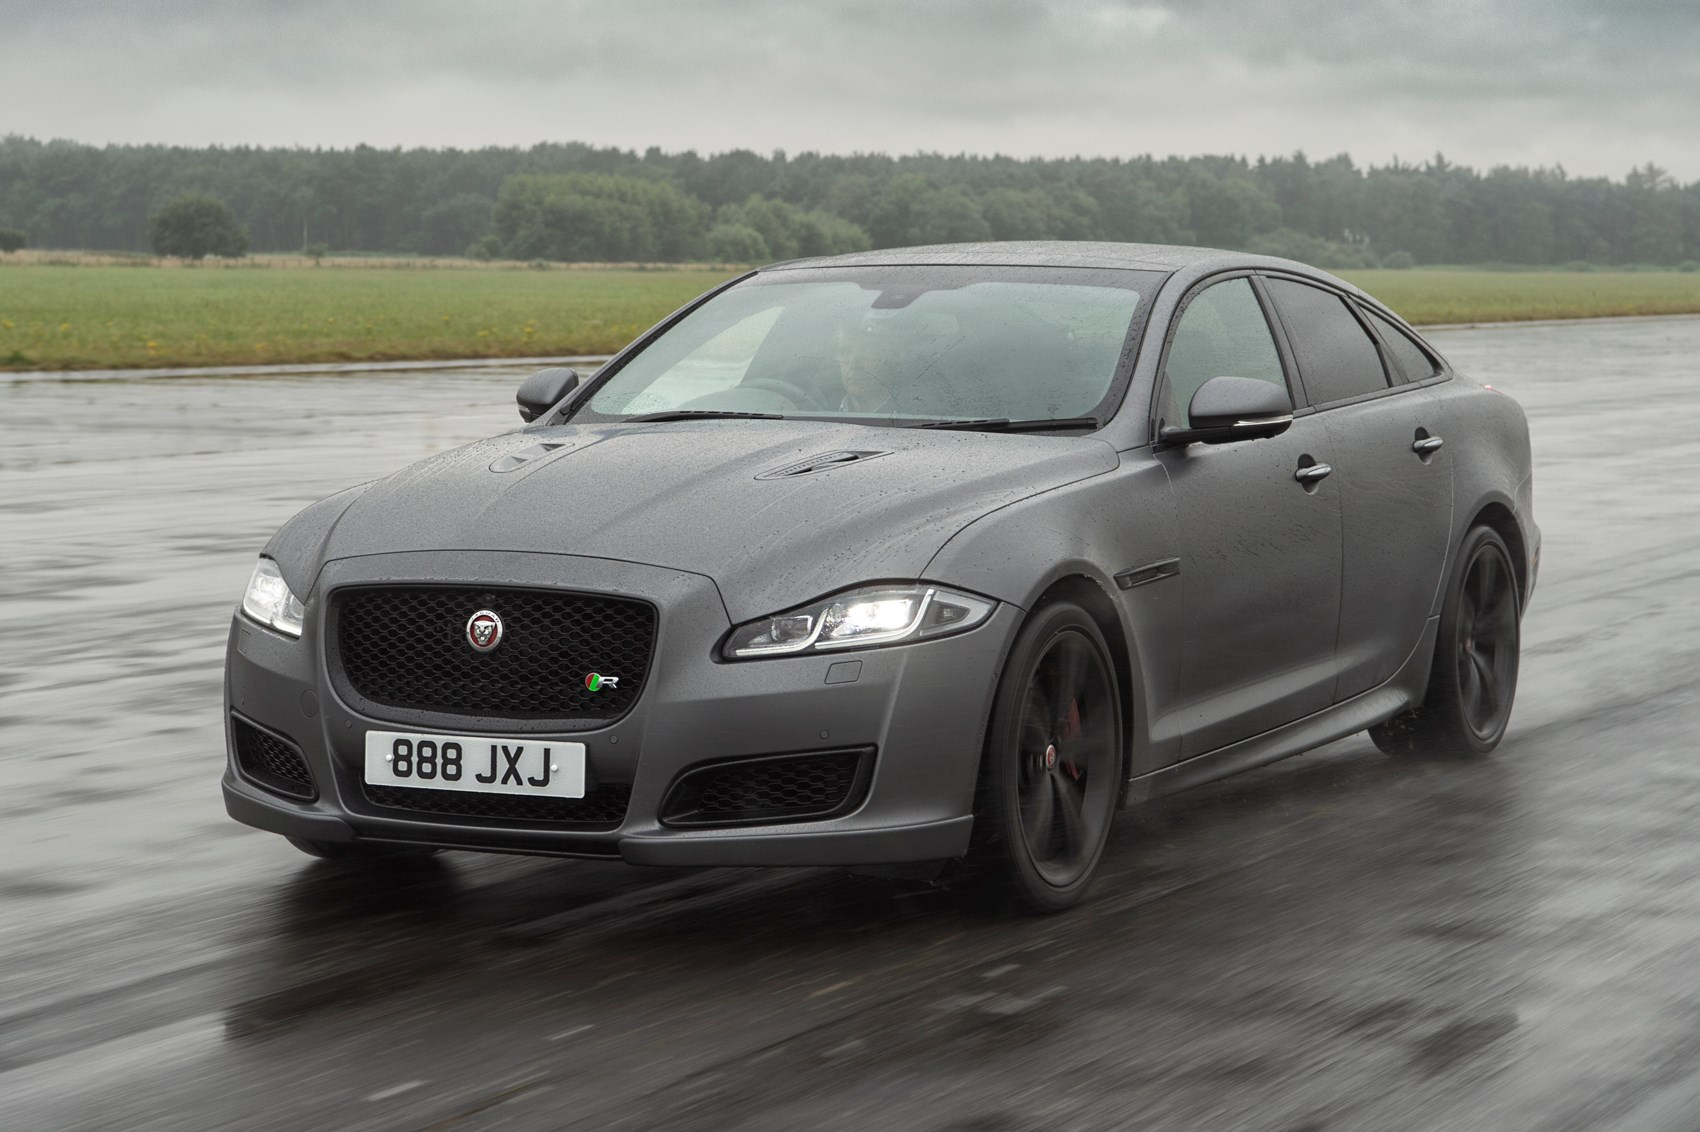 Jaguar Xjr 575 Hints At Hotter Sports Limo on chrysler cars